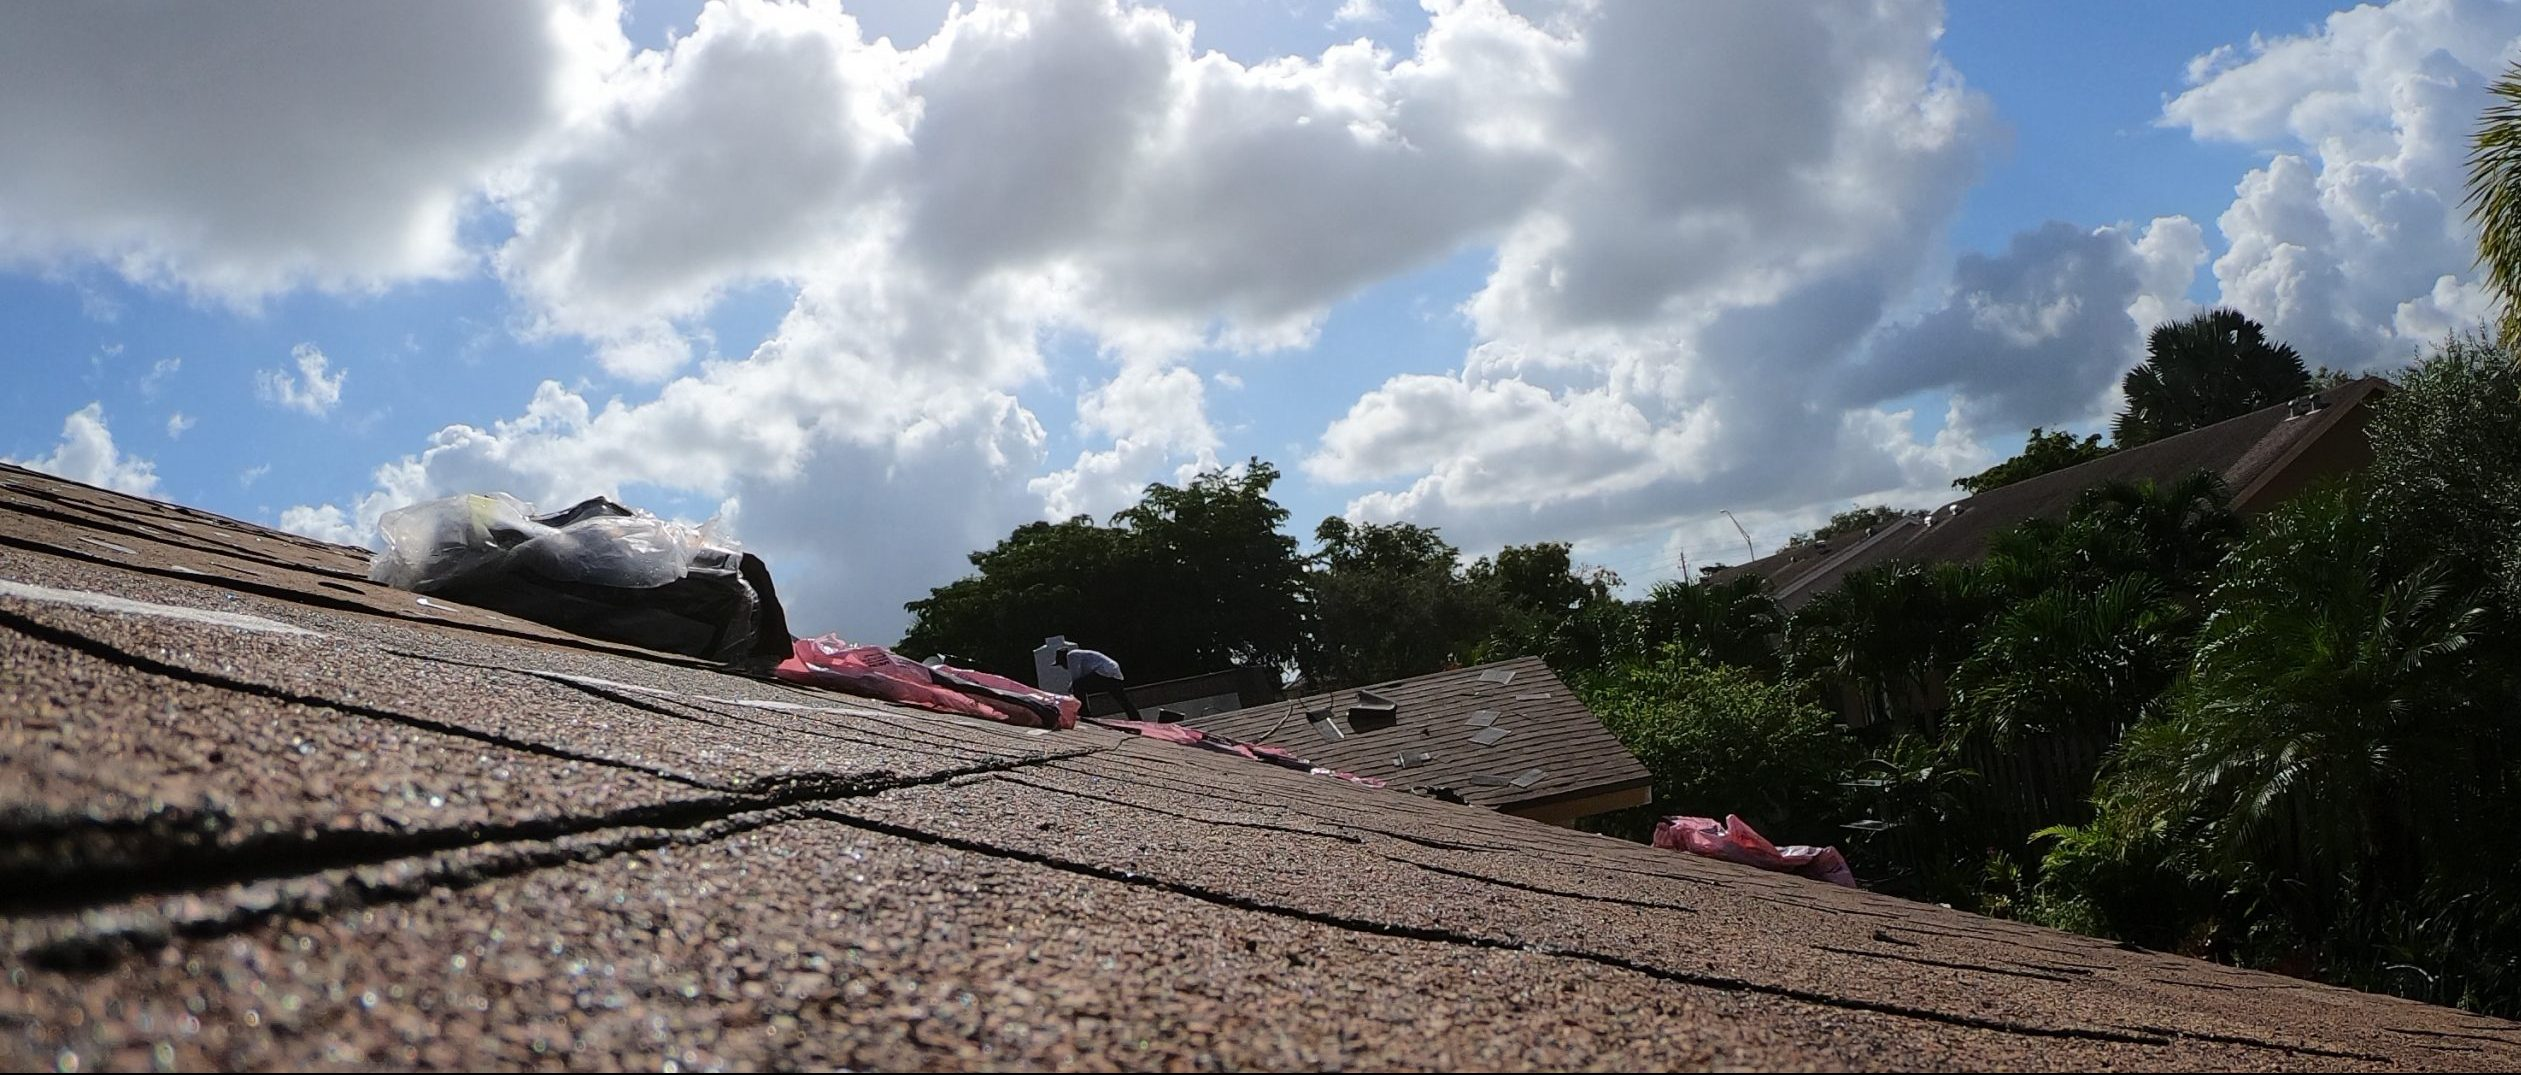 How To Repair Roof Shingles Blown Off